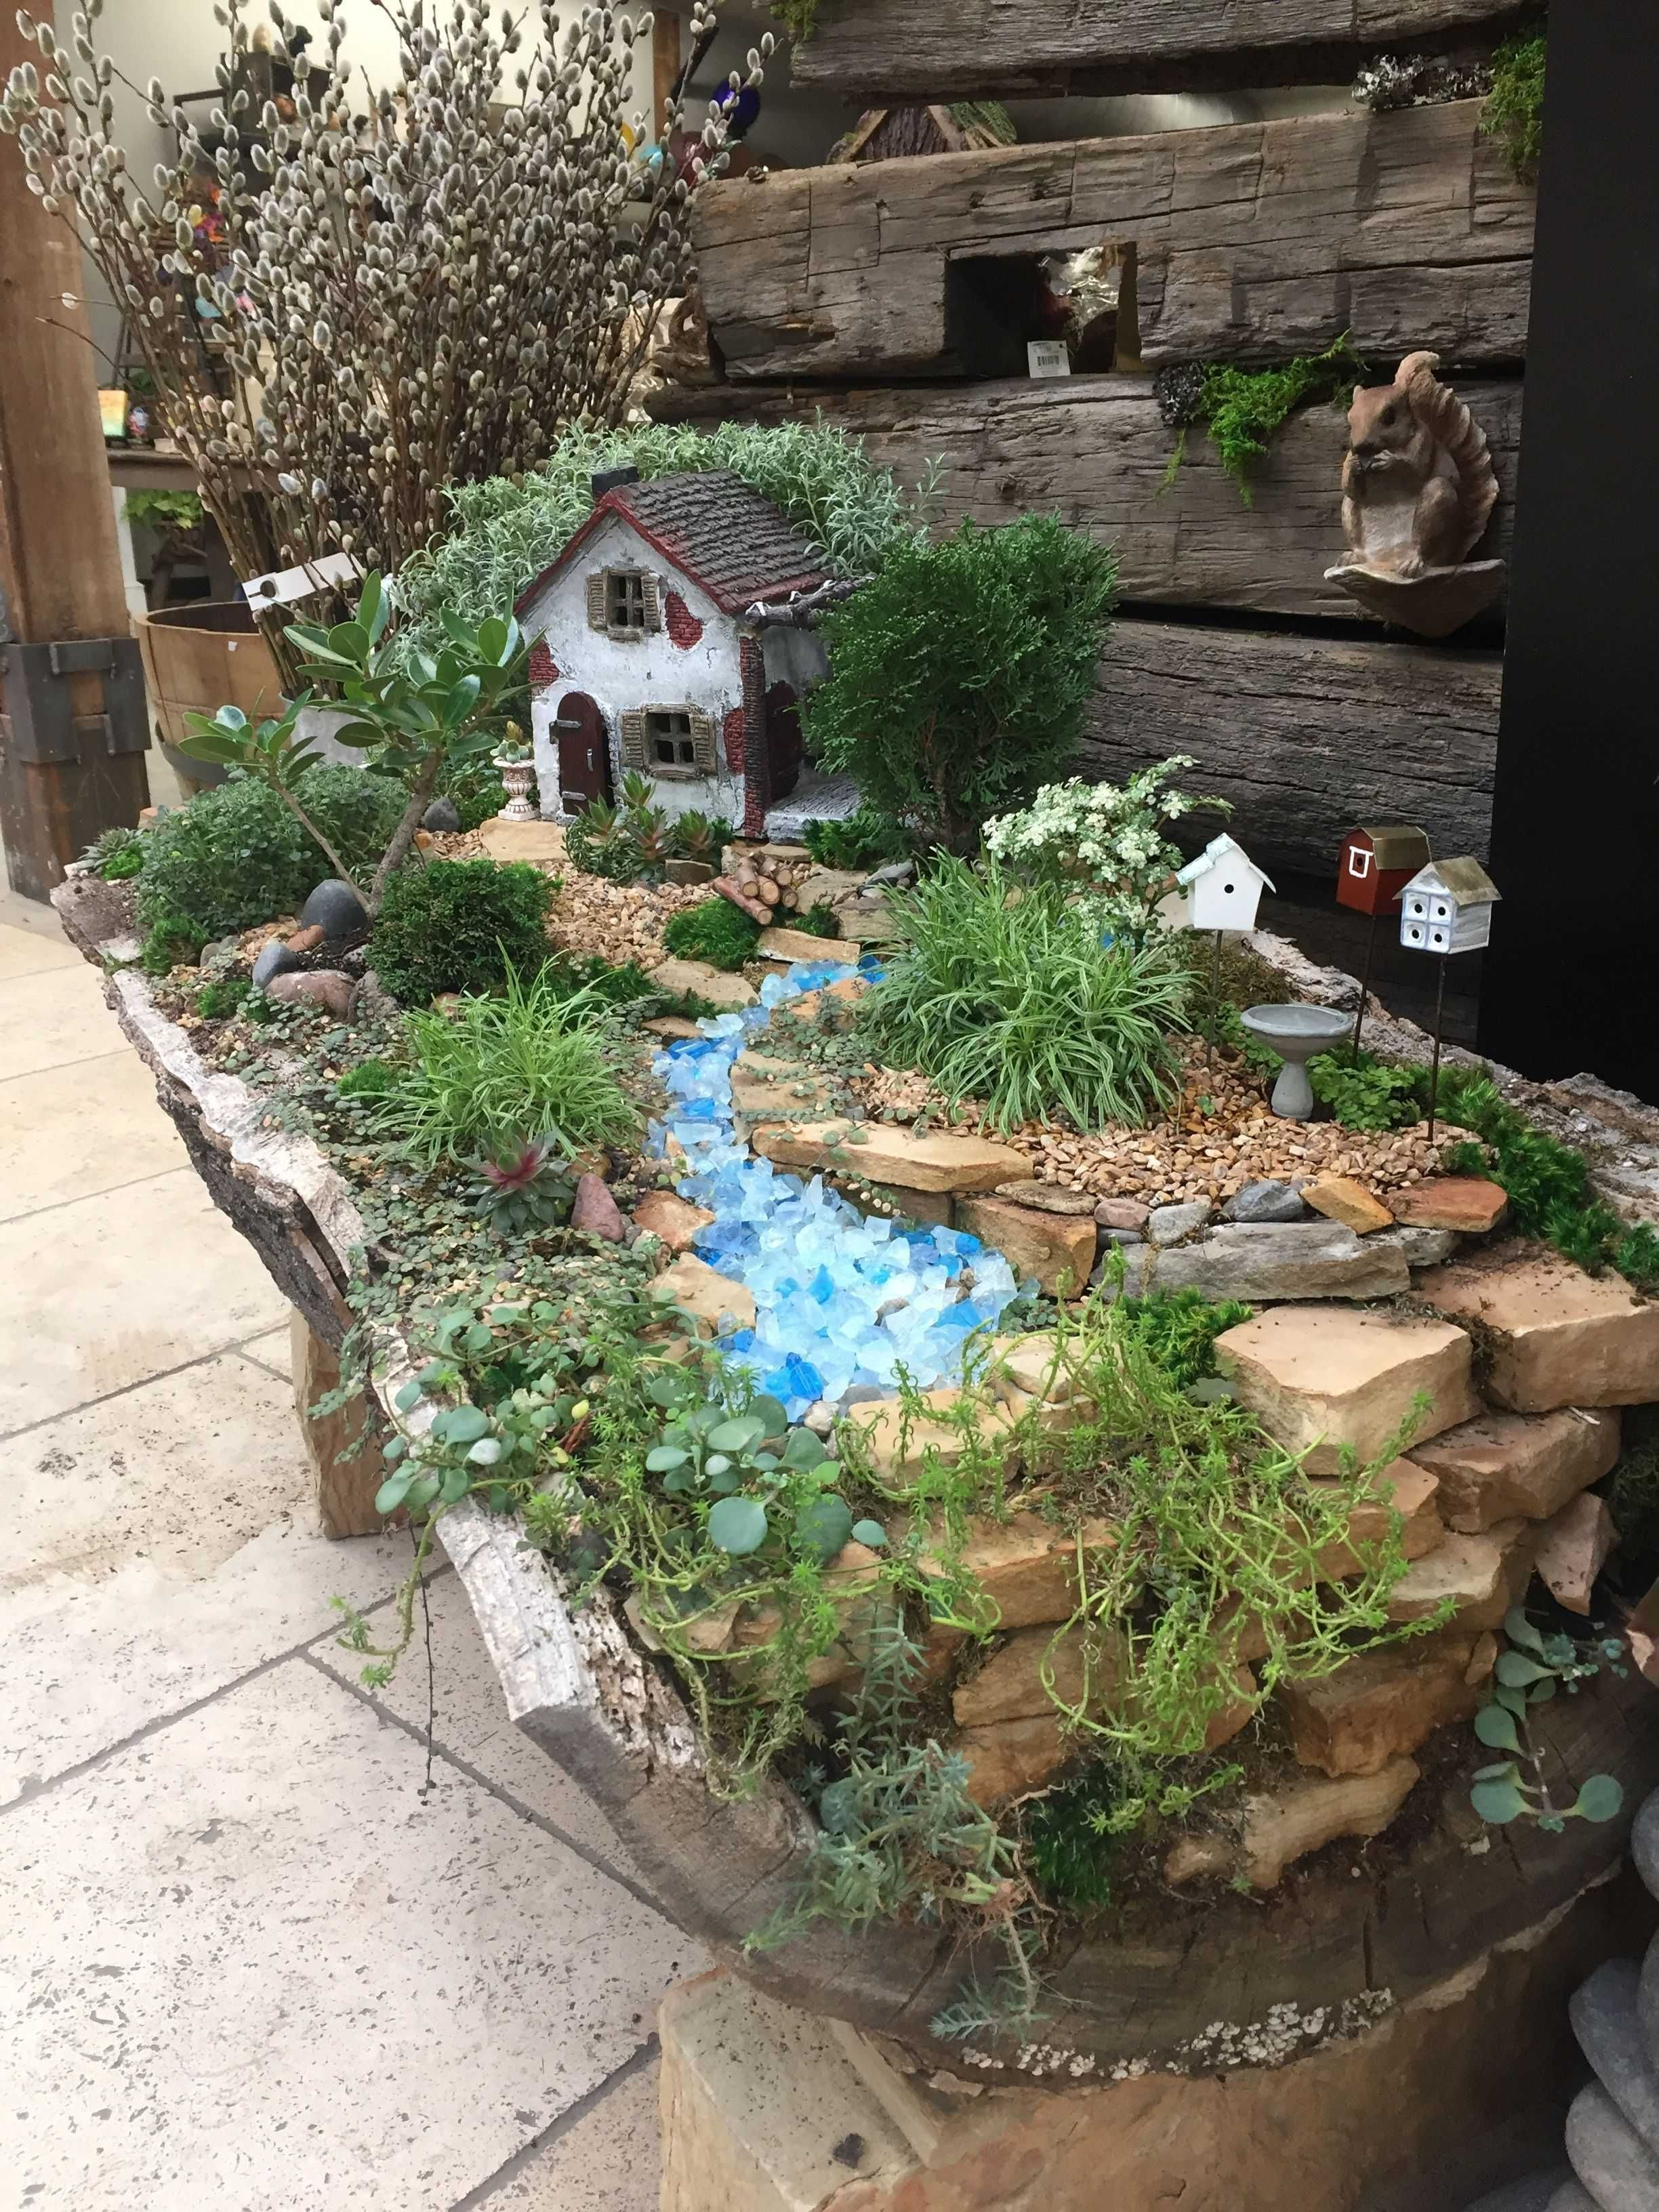 49 Lovely And Magical Miniature Fairy Garden Ideas In 2020 Indoor Fairy Gardens Fairy Garden Houses Miniature Garden